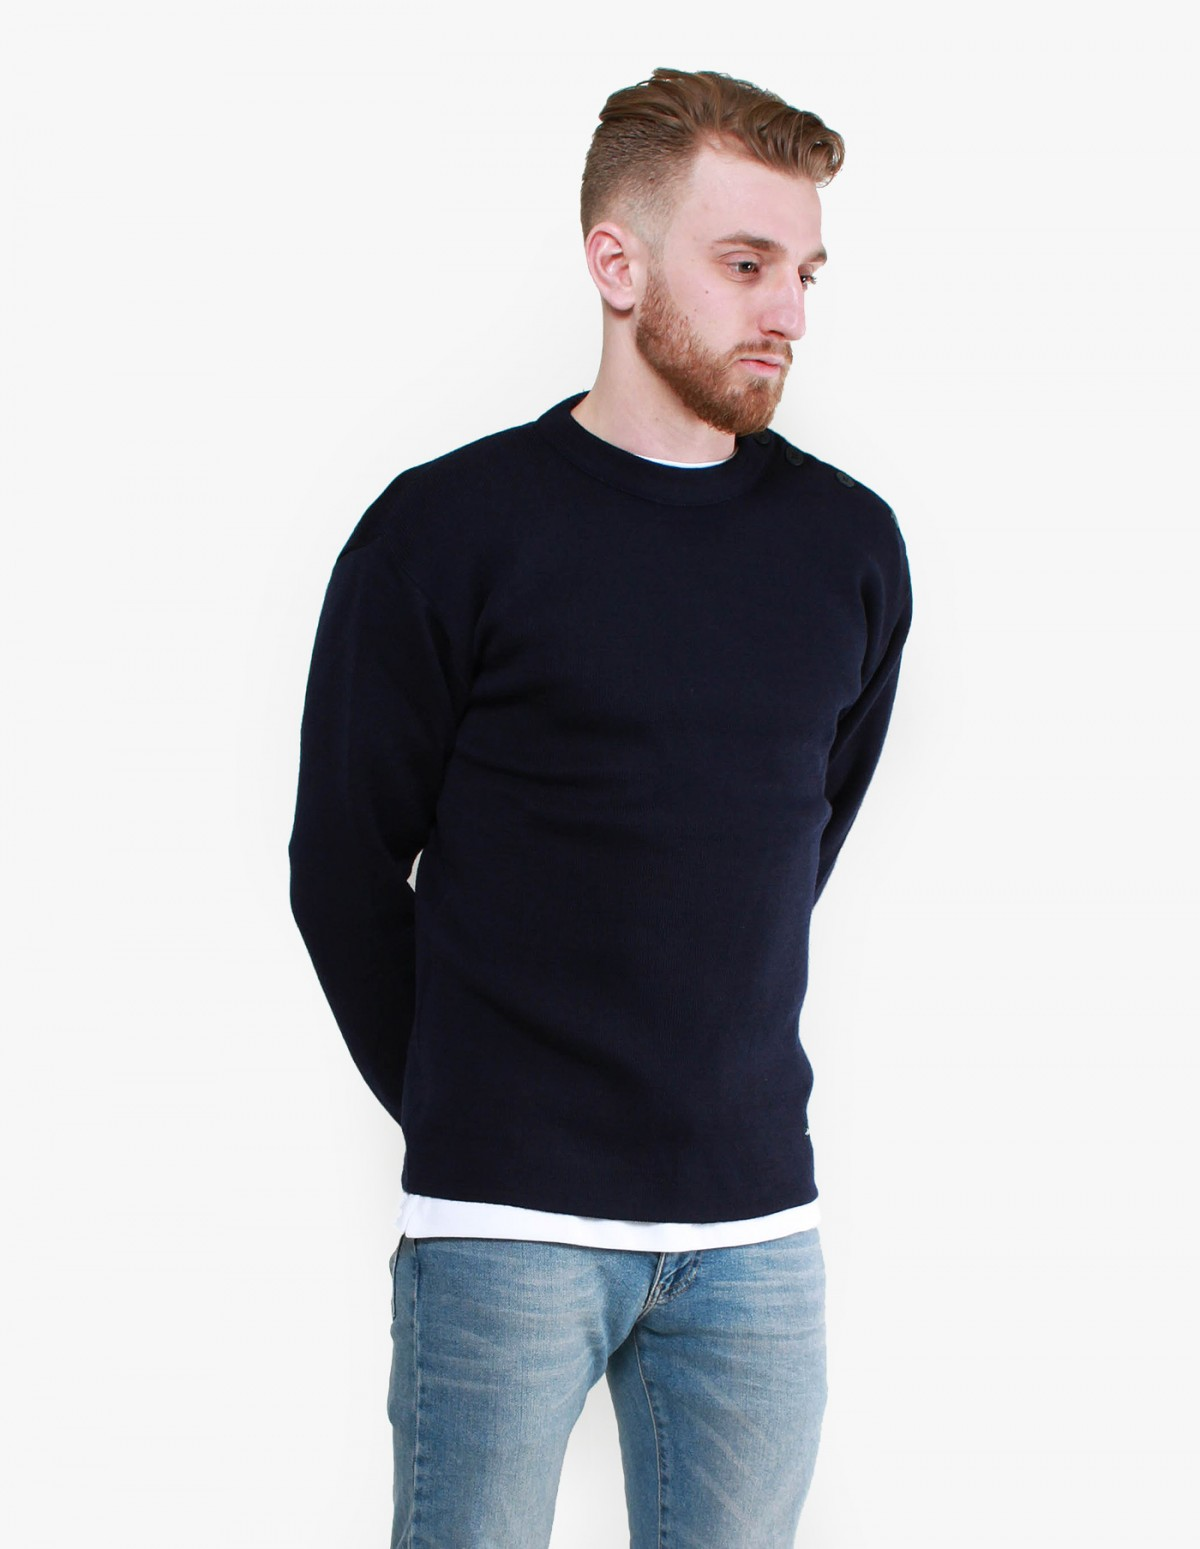 809da85657 Armor Lux Fouesnant Knit in Navy Armor Lux Fouesnant Knit in Navy ...